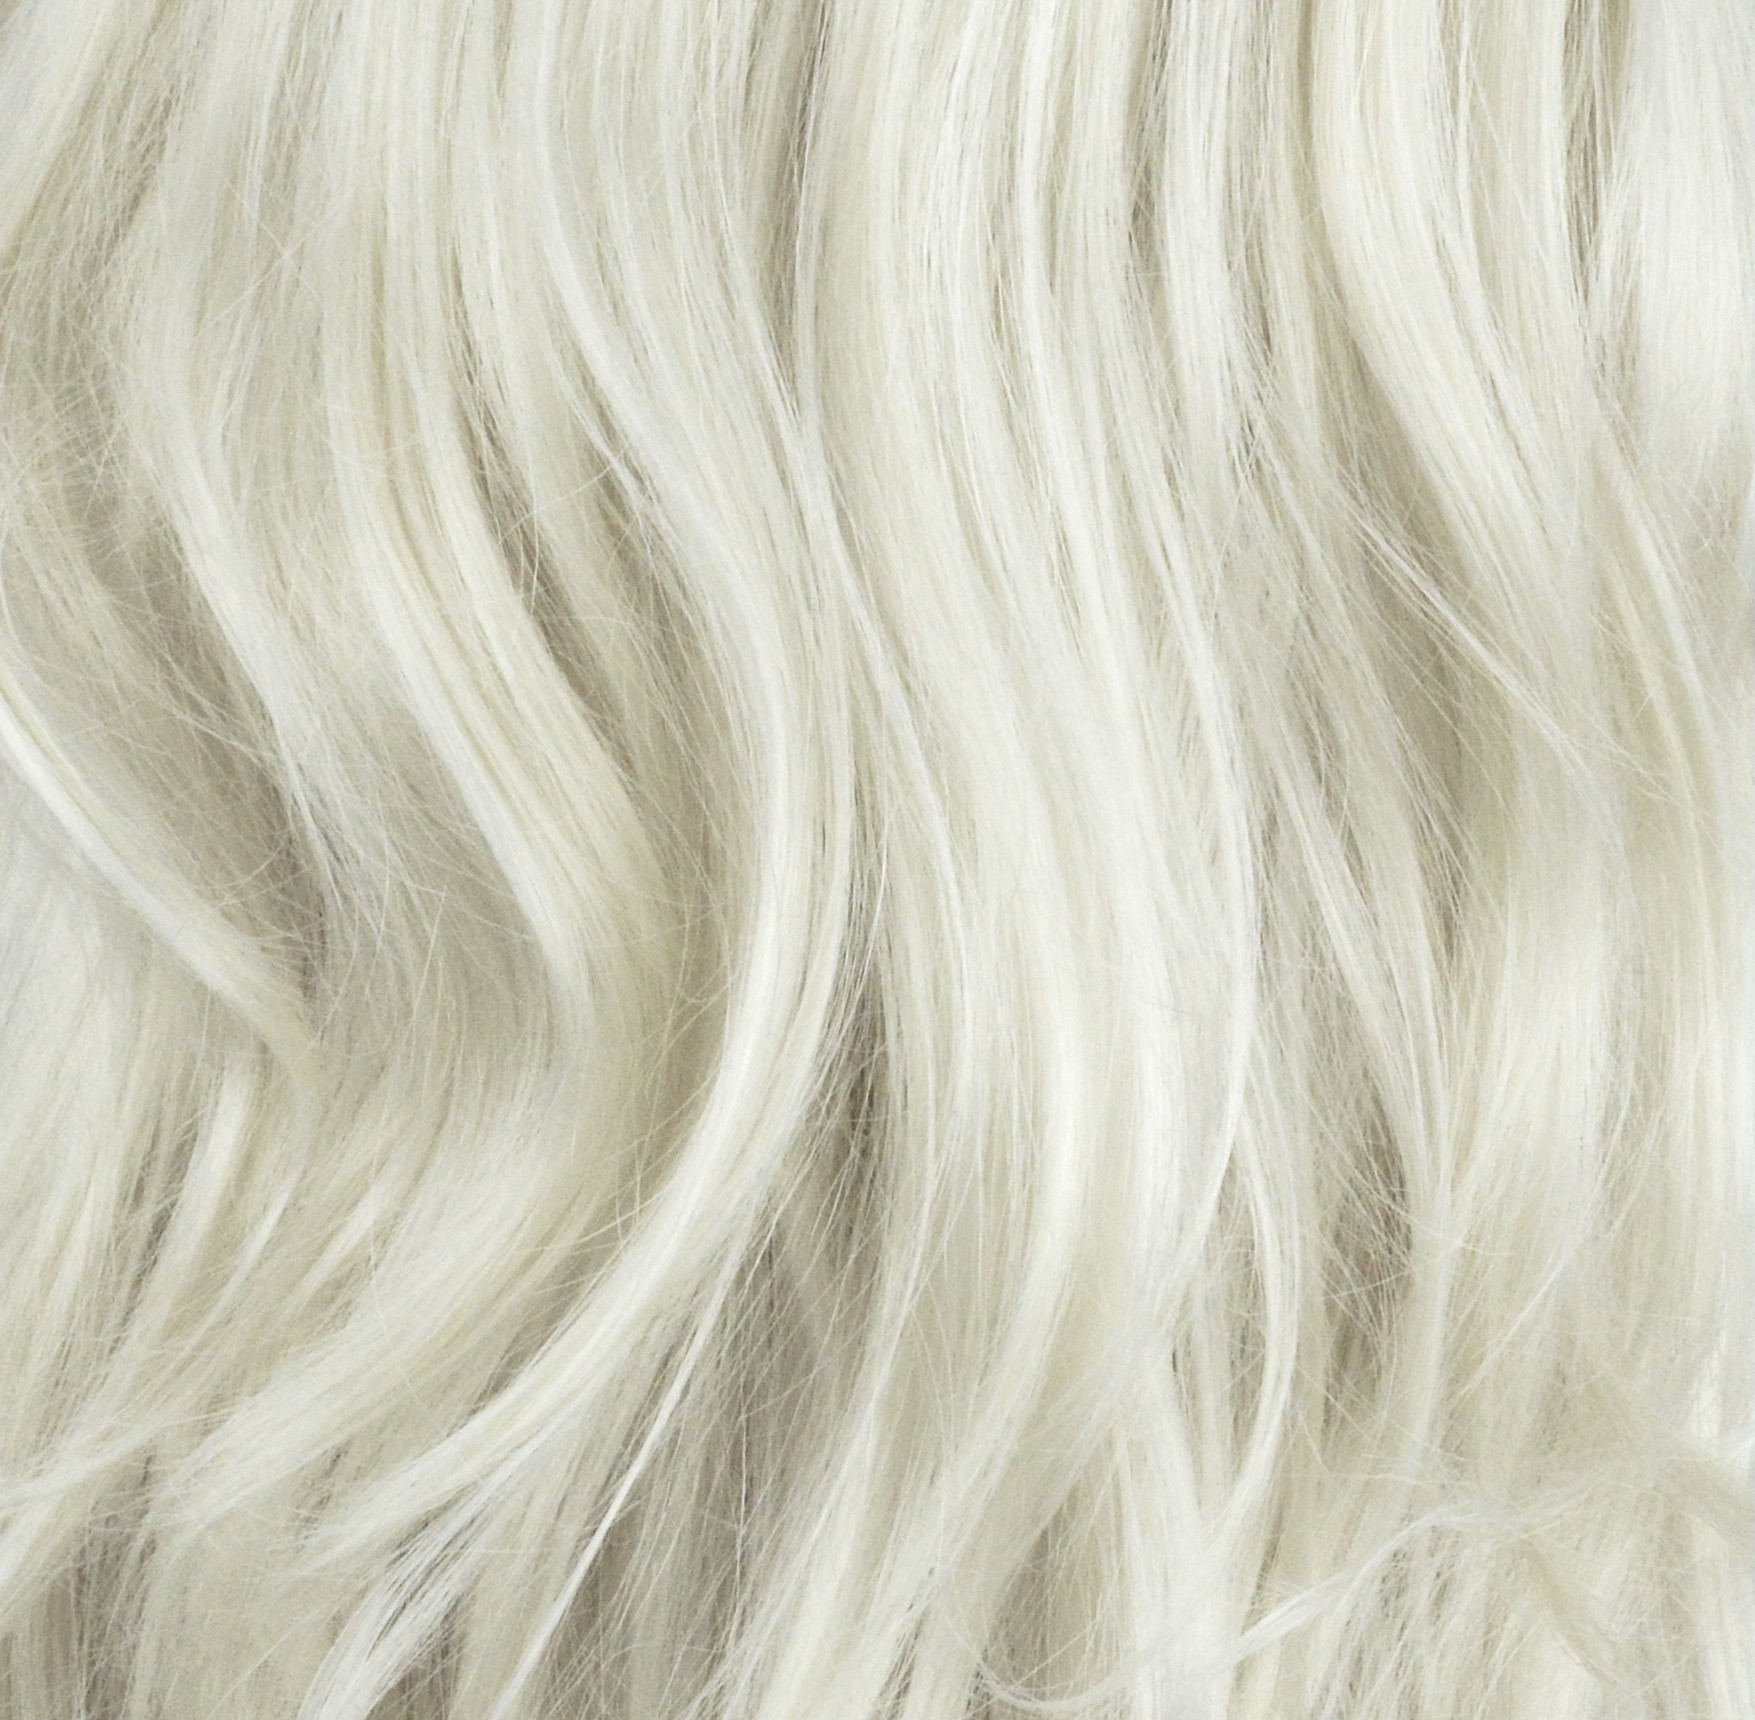 One Piece Clip In Hair Extensions Curly Wavy Straight All Colours Uk